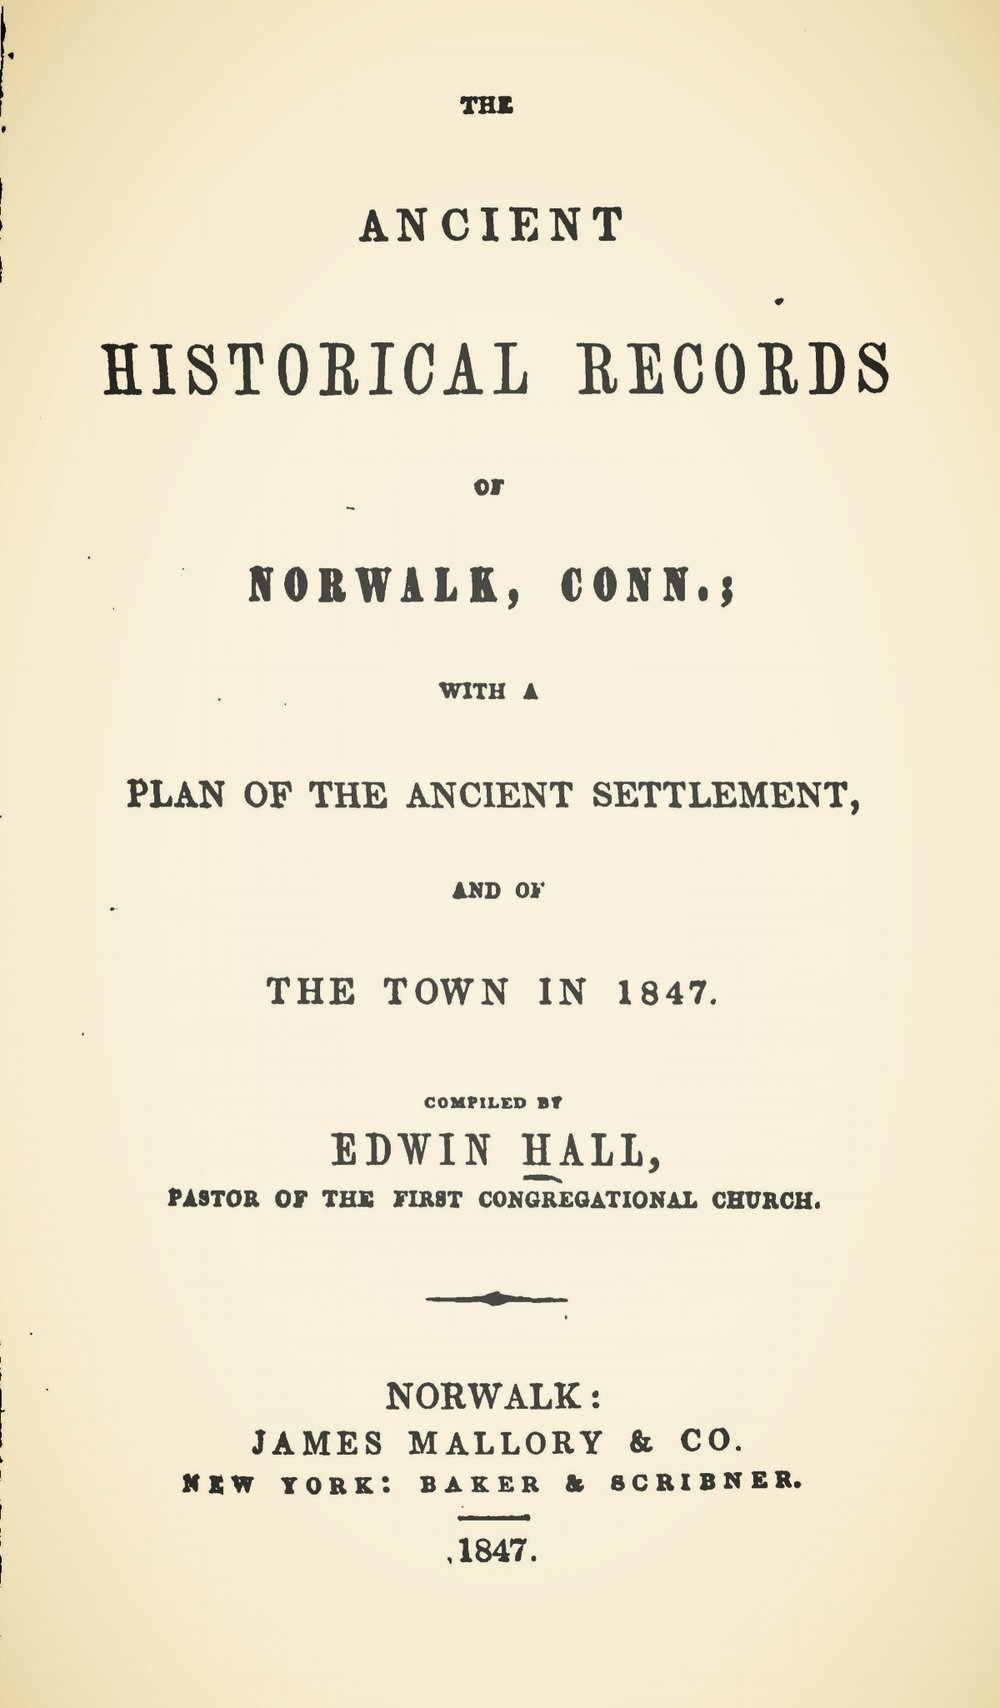 Hall, Sr., Edwin, The Ancient Historical Records of Norwalk, Connecticut Title Page.jpg